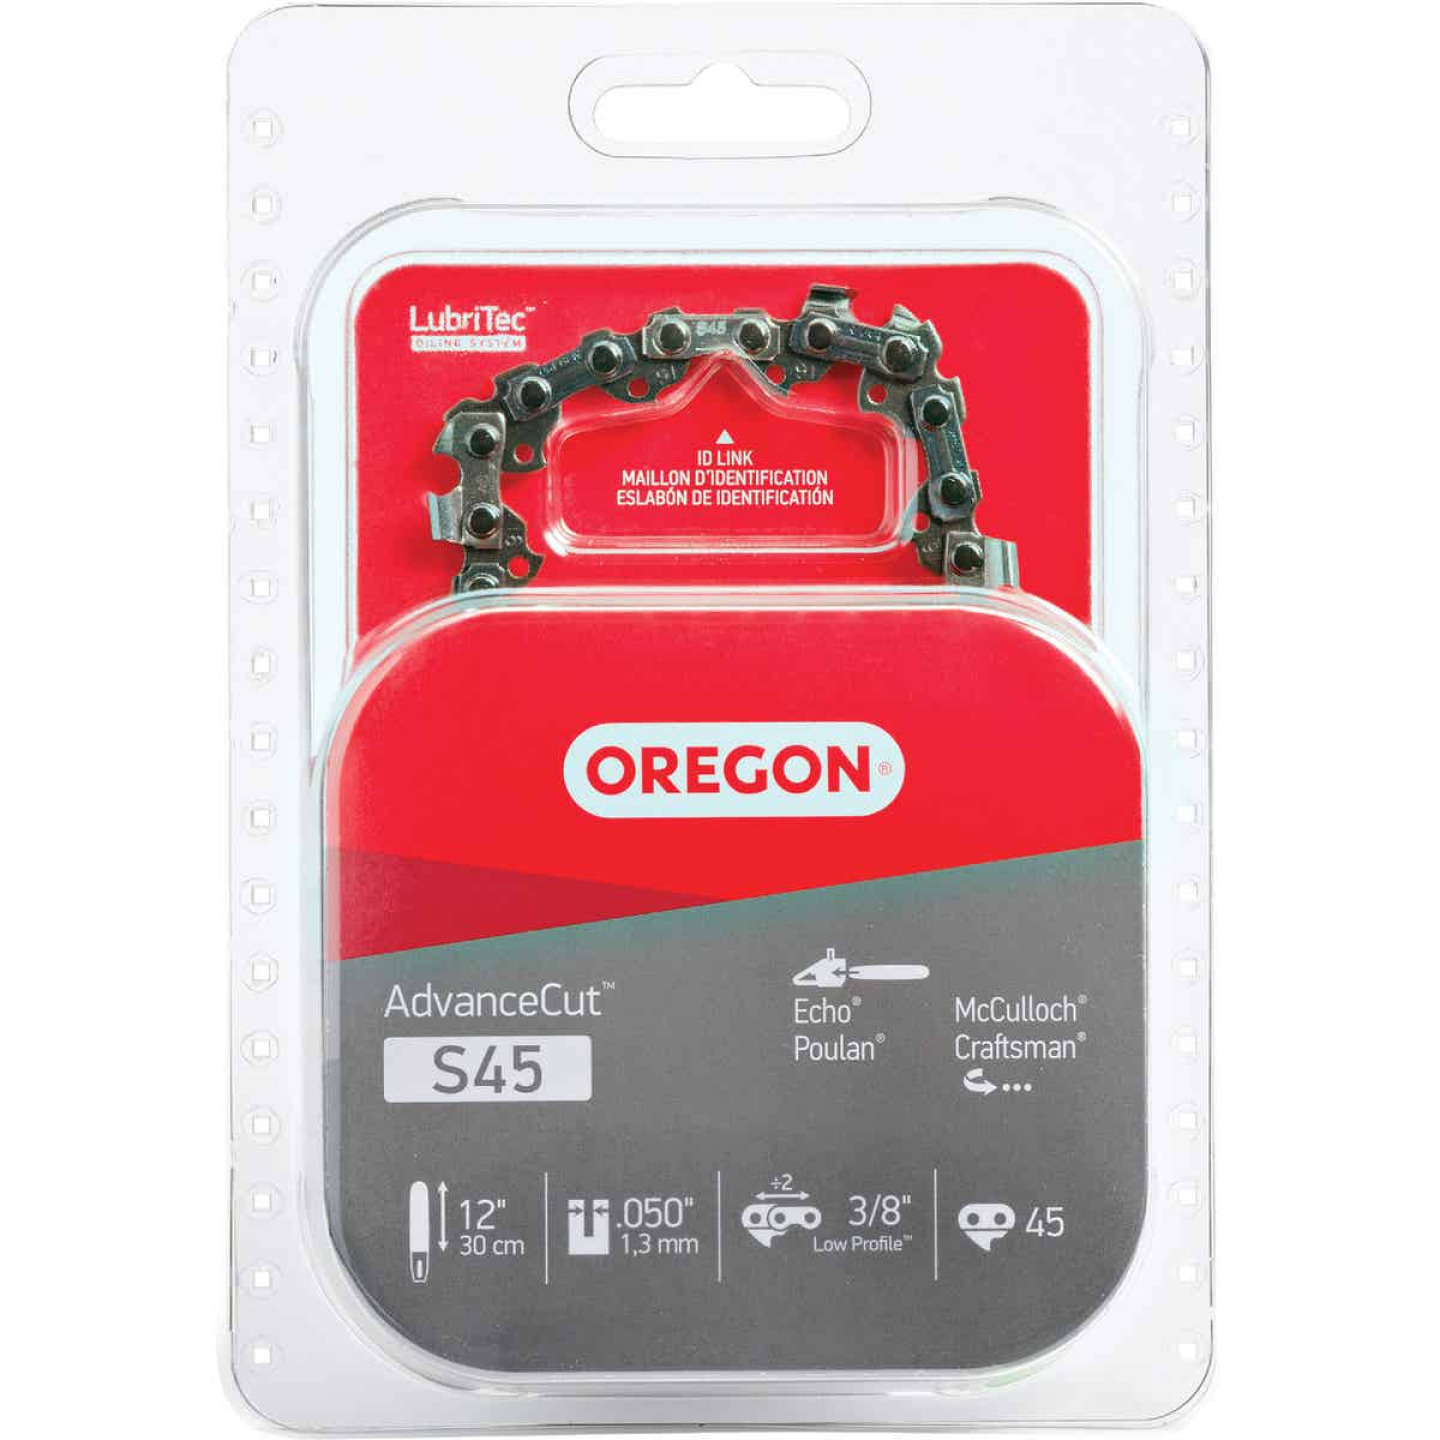 Oregon AdvanceCut S45 12 In. Chainsaw Chain Image 1